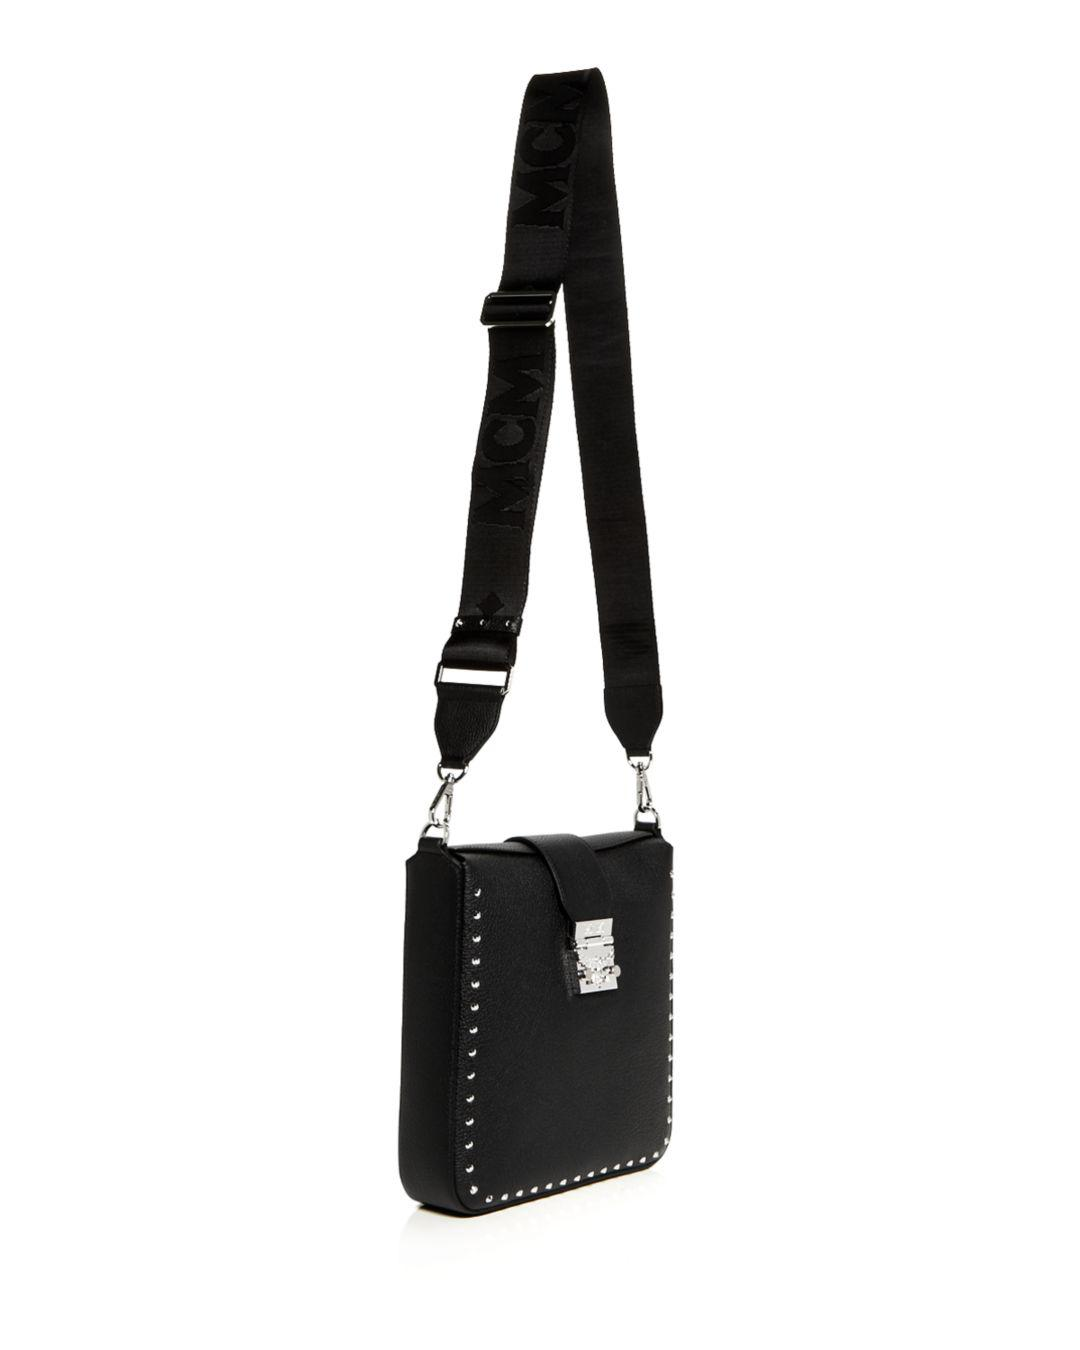 Lyst - MCM Kasion Park Avenue Studded Leather Crossbody in Black 6e8cdeba344ca